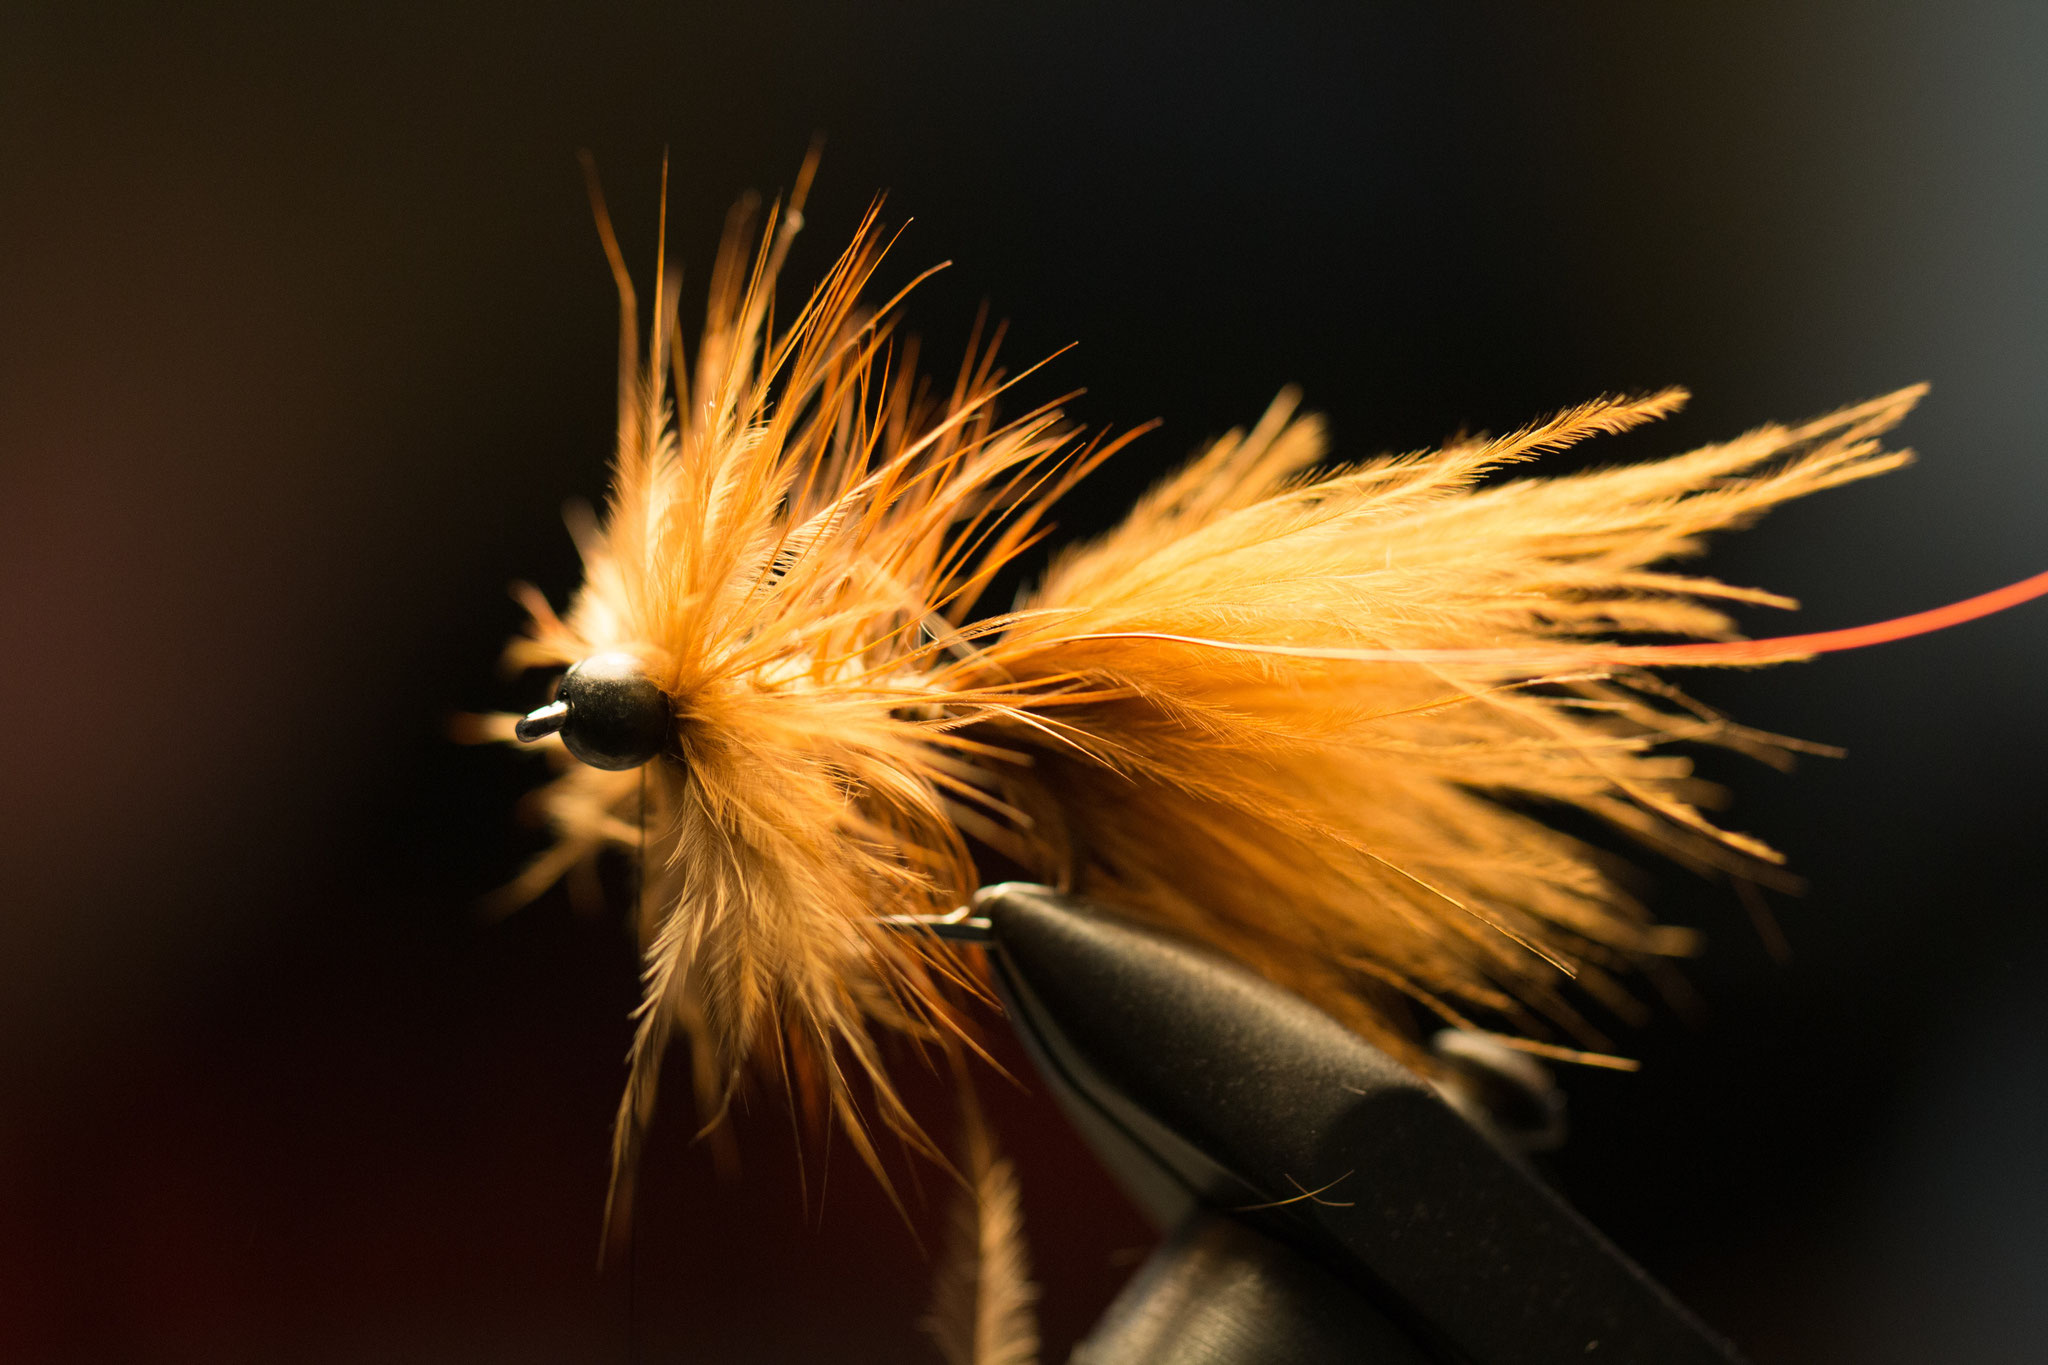 After dubbing the hook (you can use dubbing brushes, makes it very easy), wind the saddle hackle towards the bead. Make a couple of turns directly behind the bead to make kind of a head.